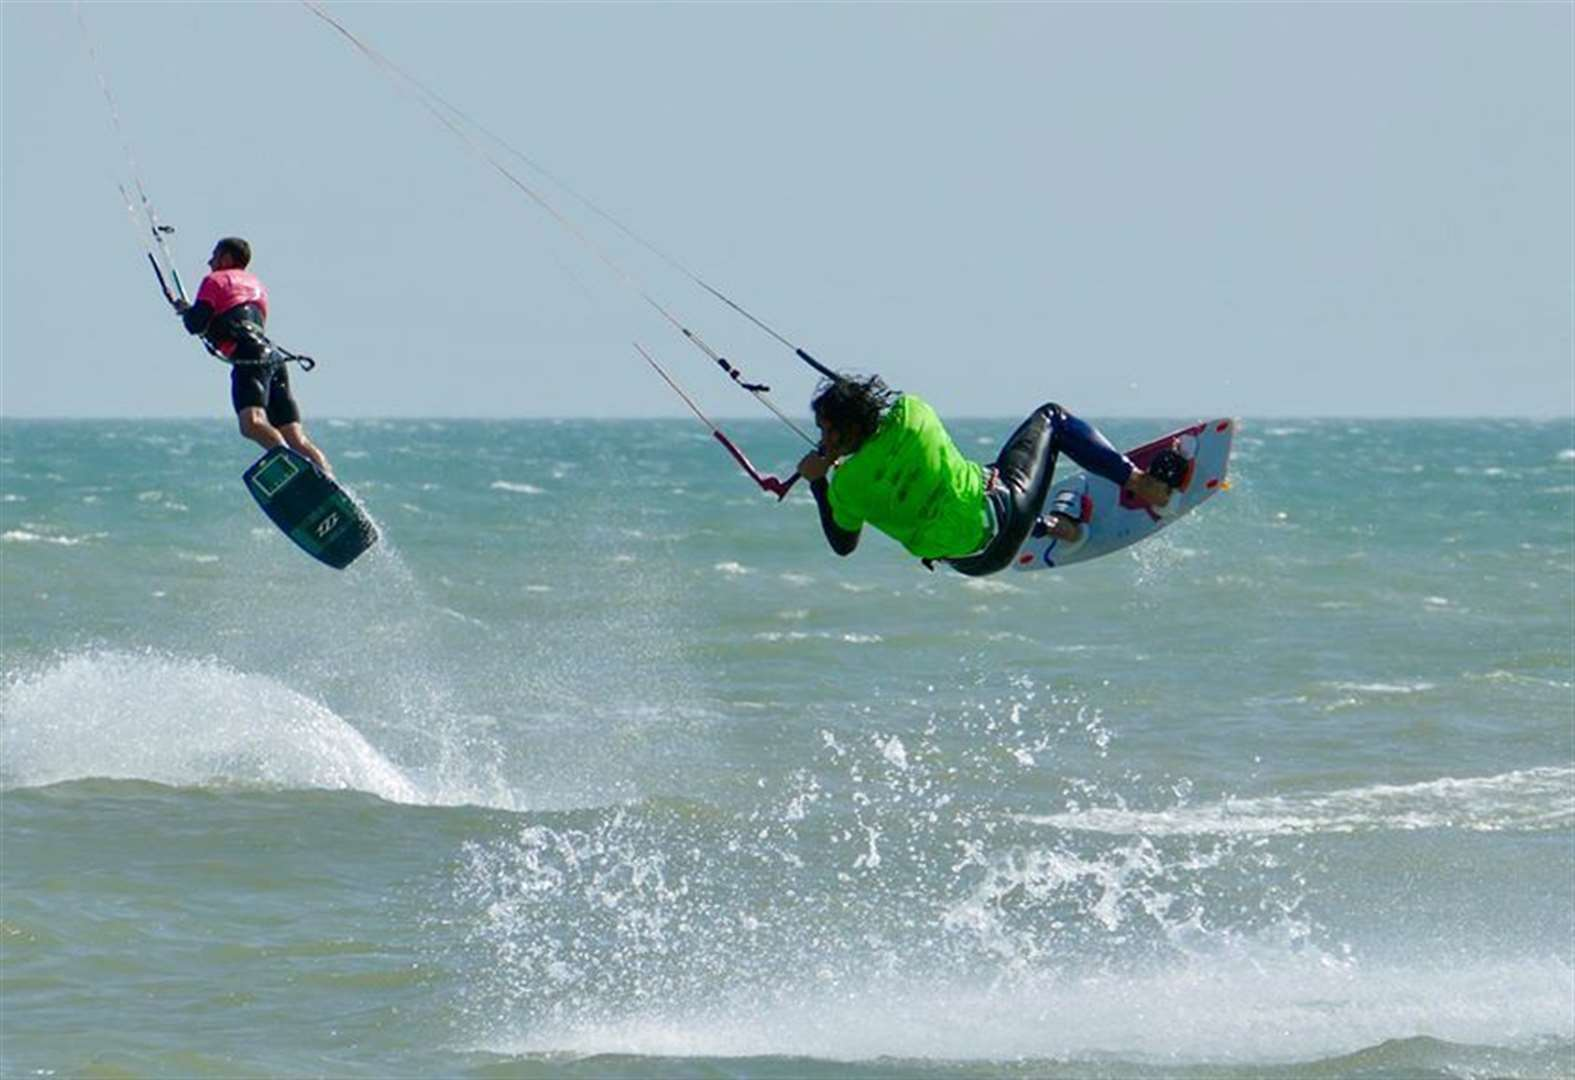 Kent to host National Kitesurfing Championships final